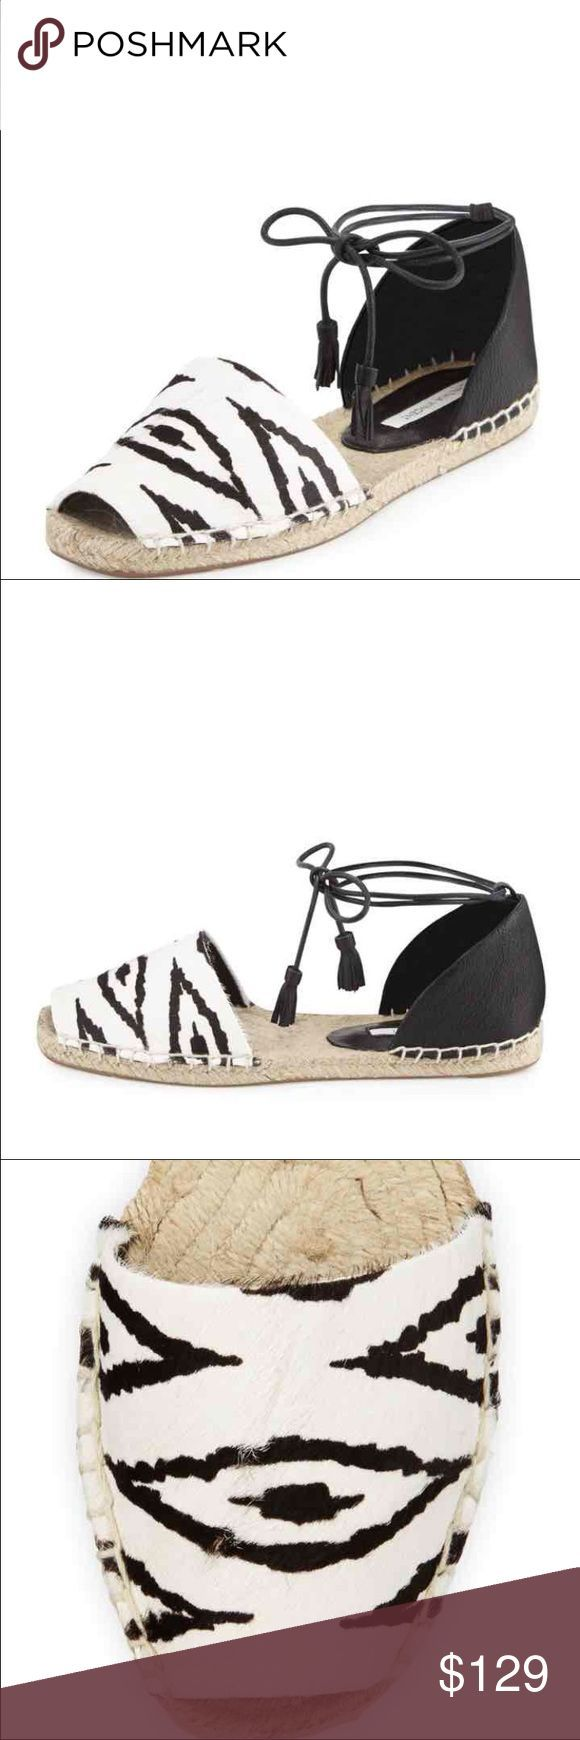 """Farie Zebraprint Anklewrap Sandal Brand new Cynthia Vincent leather and zebra-print dyed calf hair (China) sandal. 0.3"""" flat heel. Peep toe. Self-tie ankle wrap. Braided-jute midsole. Rubber outsole. Color: BLACK/WHITe size 10 NWOB Cynthia Vincent Shoes Flats & Loafers"""